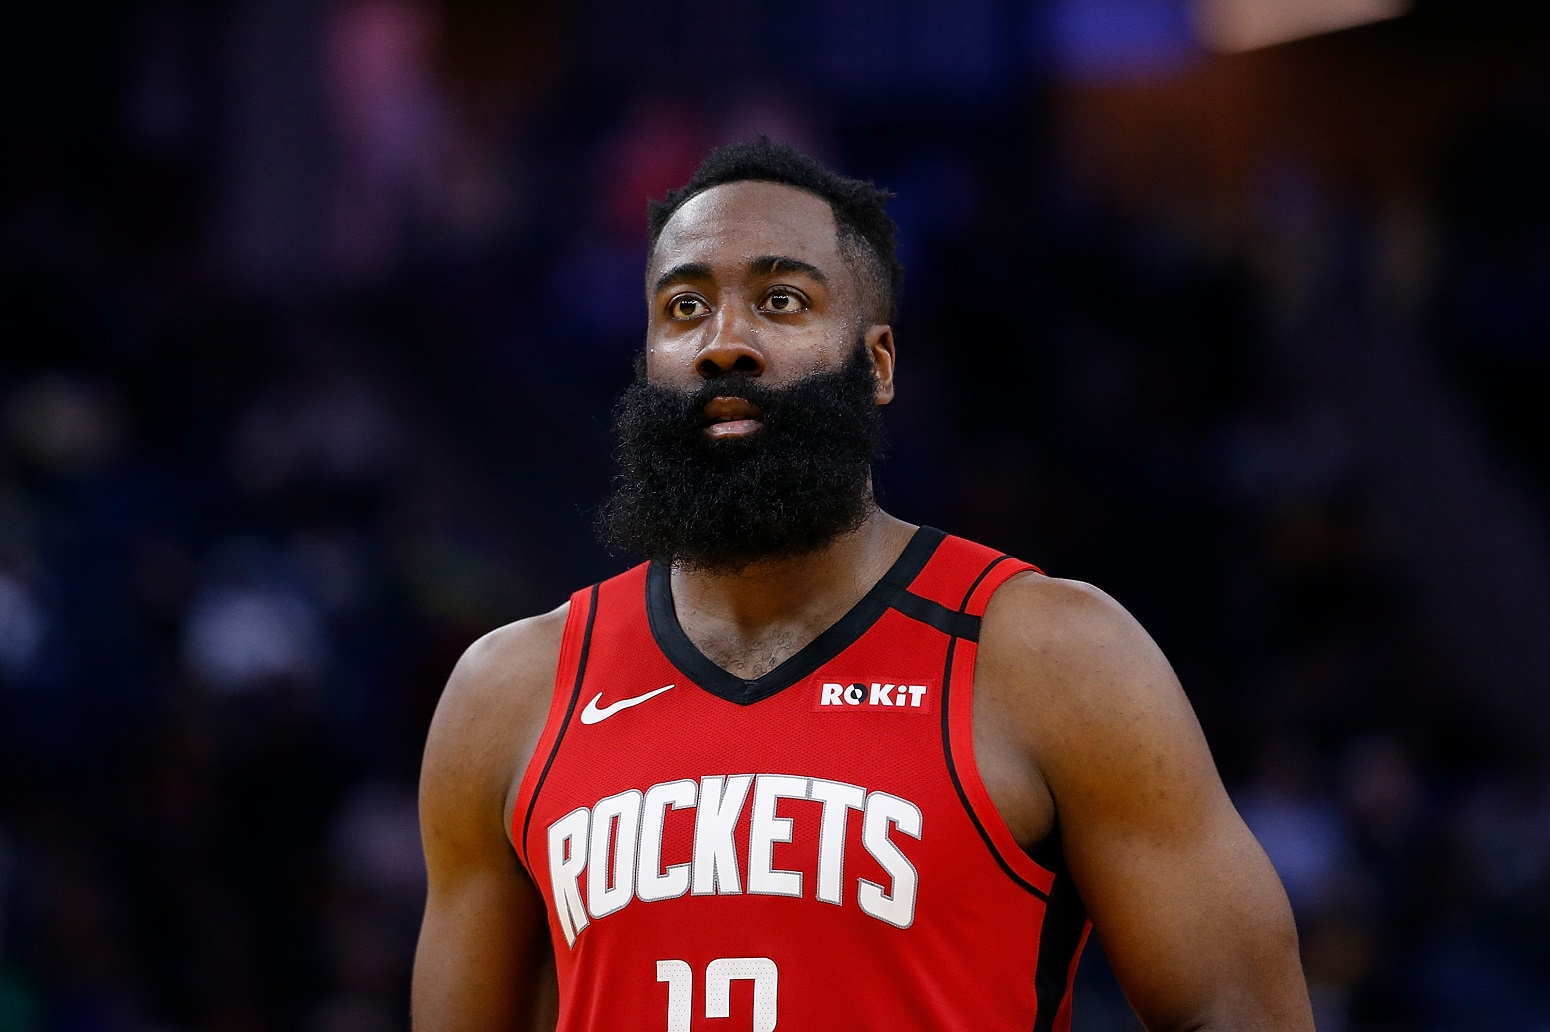 Donald Trump James Harden Houston Rockets